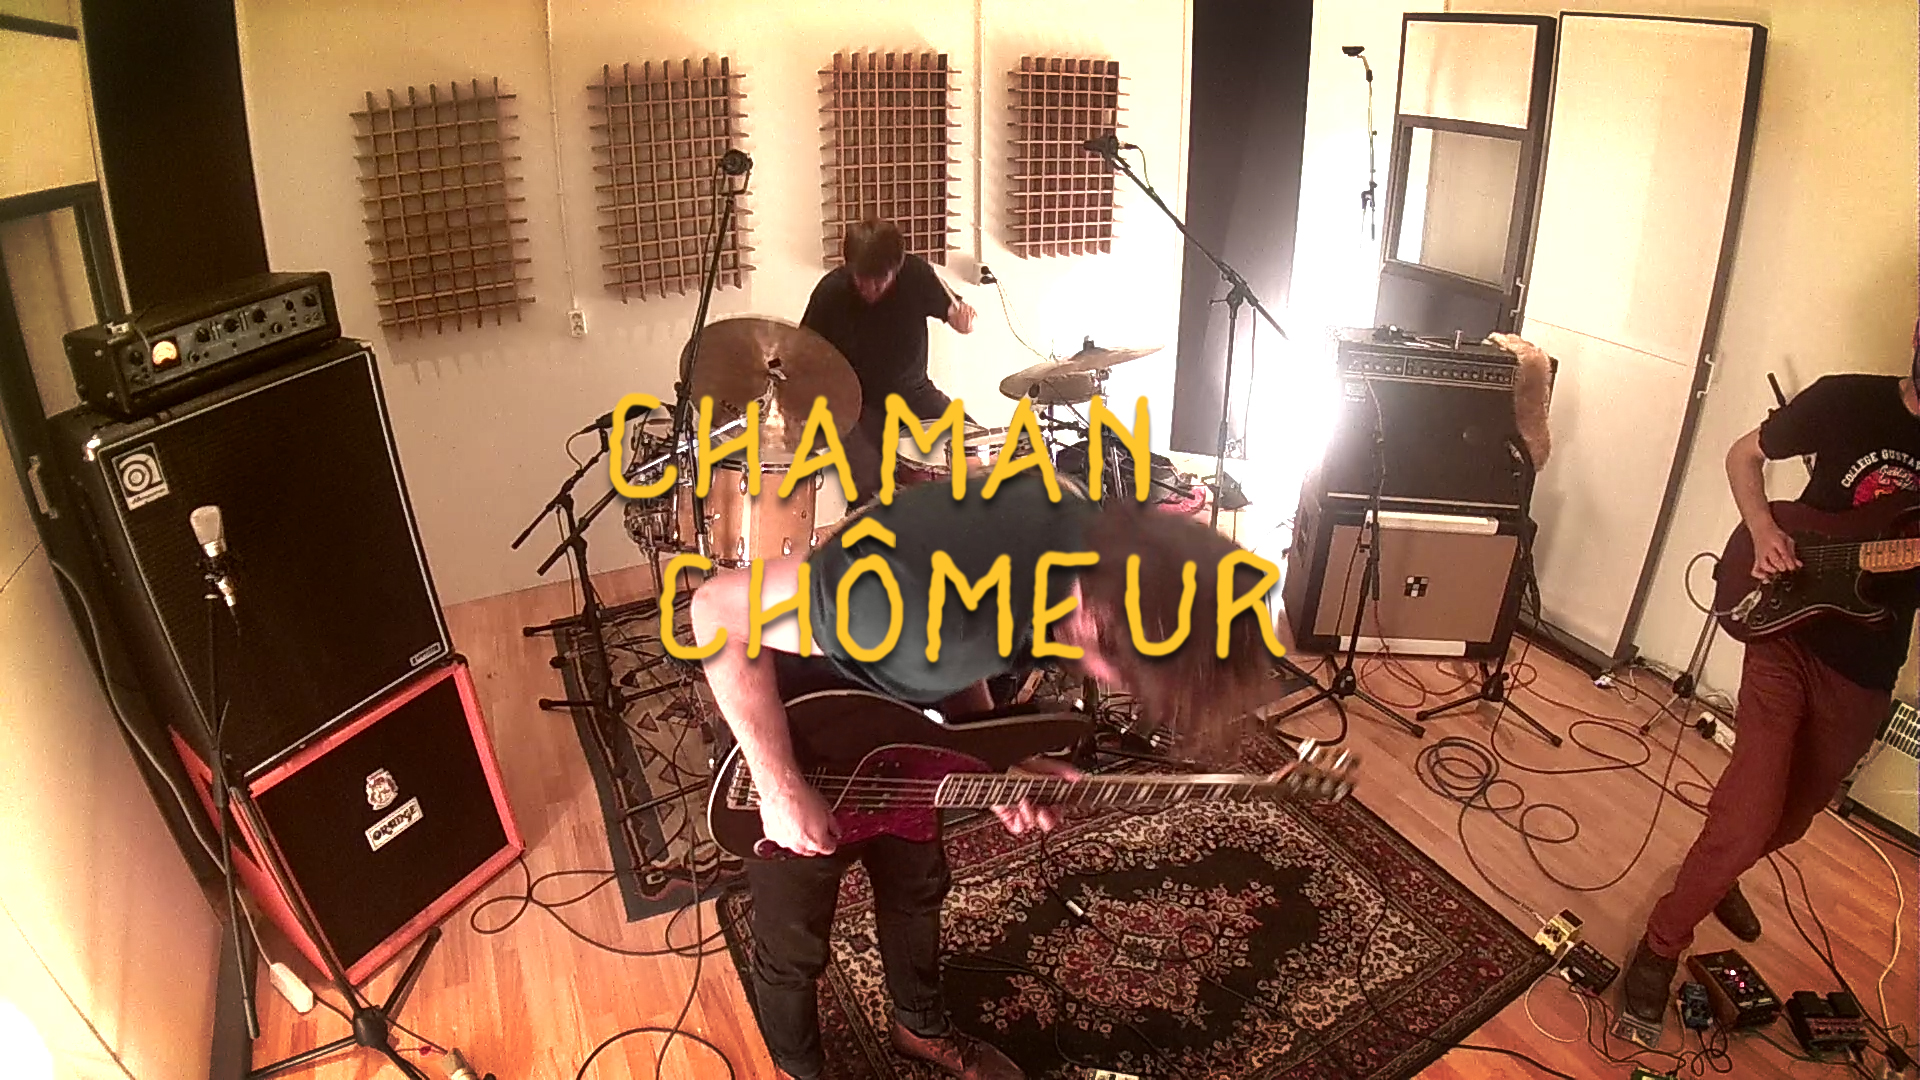 Chaman Chômeur – Free Jazz / Noise Rock from Lille, France